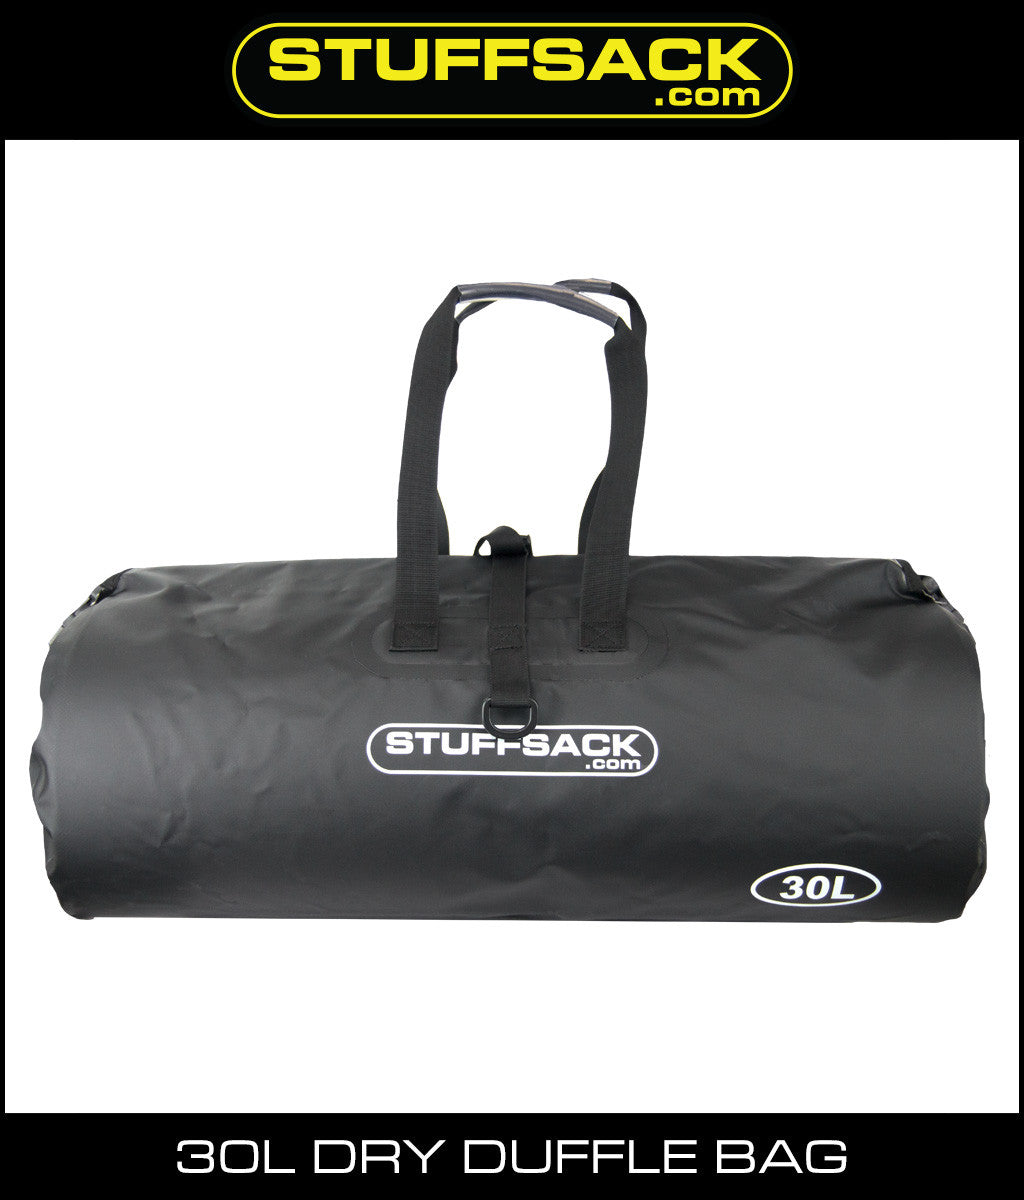 Stuffsack.com Dry Duffle Bag - 30L Black